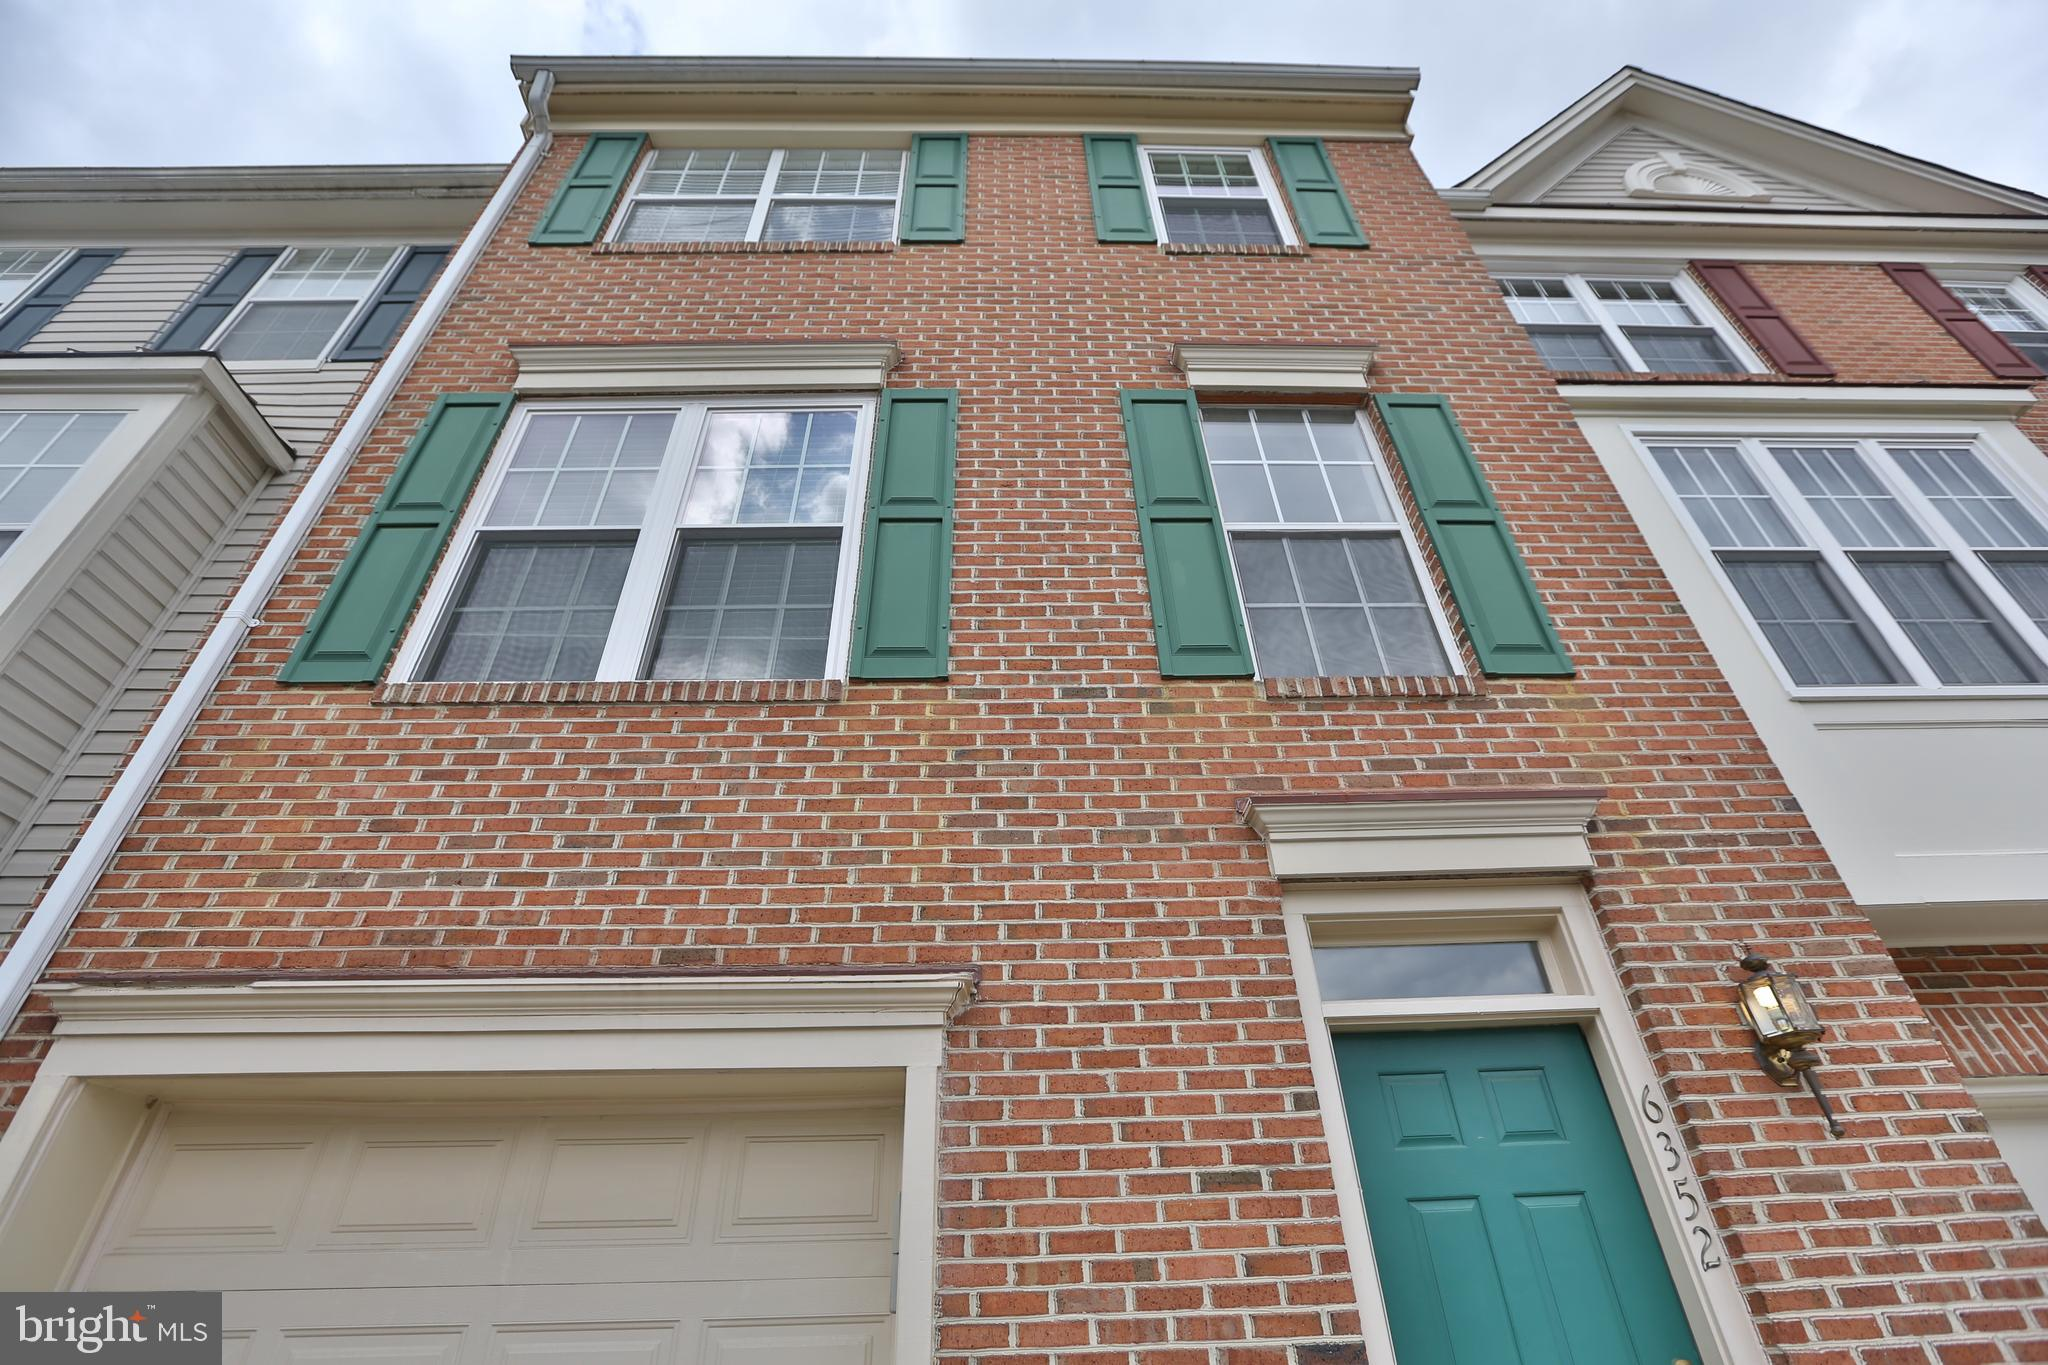 PET - CASE BY CASE - Great opportunity to rent this lovely 3 level brick front townhouse w/ 3 BR's 2 full, 2 half baths. Nice eat in kitchen with breakfast room, pantry, & separate dining room. Master BR with vaulted ceilings, andluxurious bath w/ soaking tub & sep shower. Basement has wood burning fireplace and recreationroom. Community pool, tennis/playground/ shuttle to metro